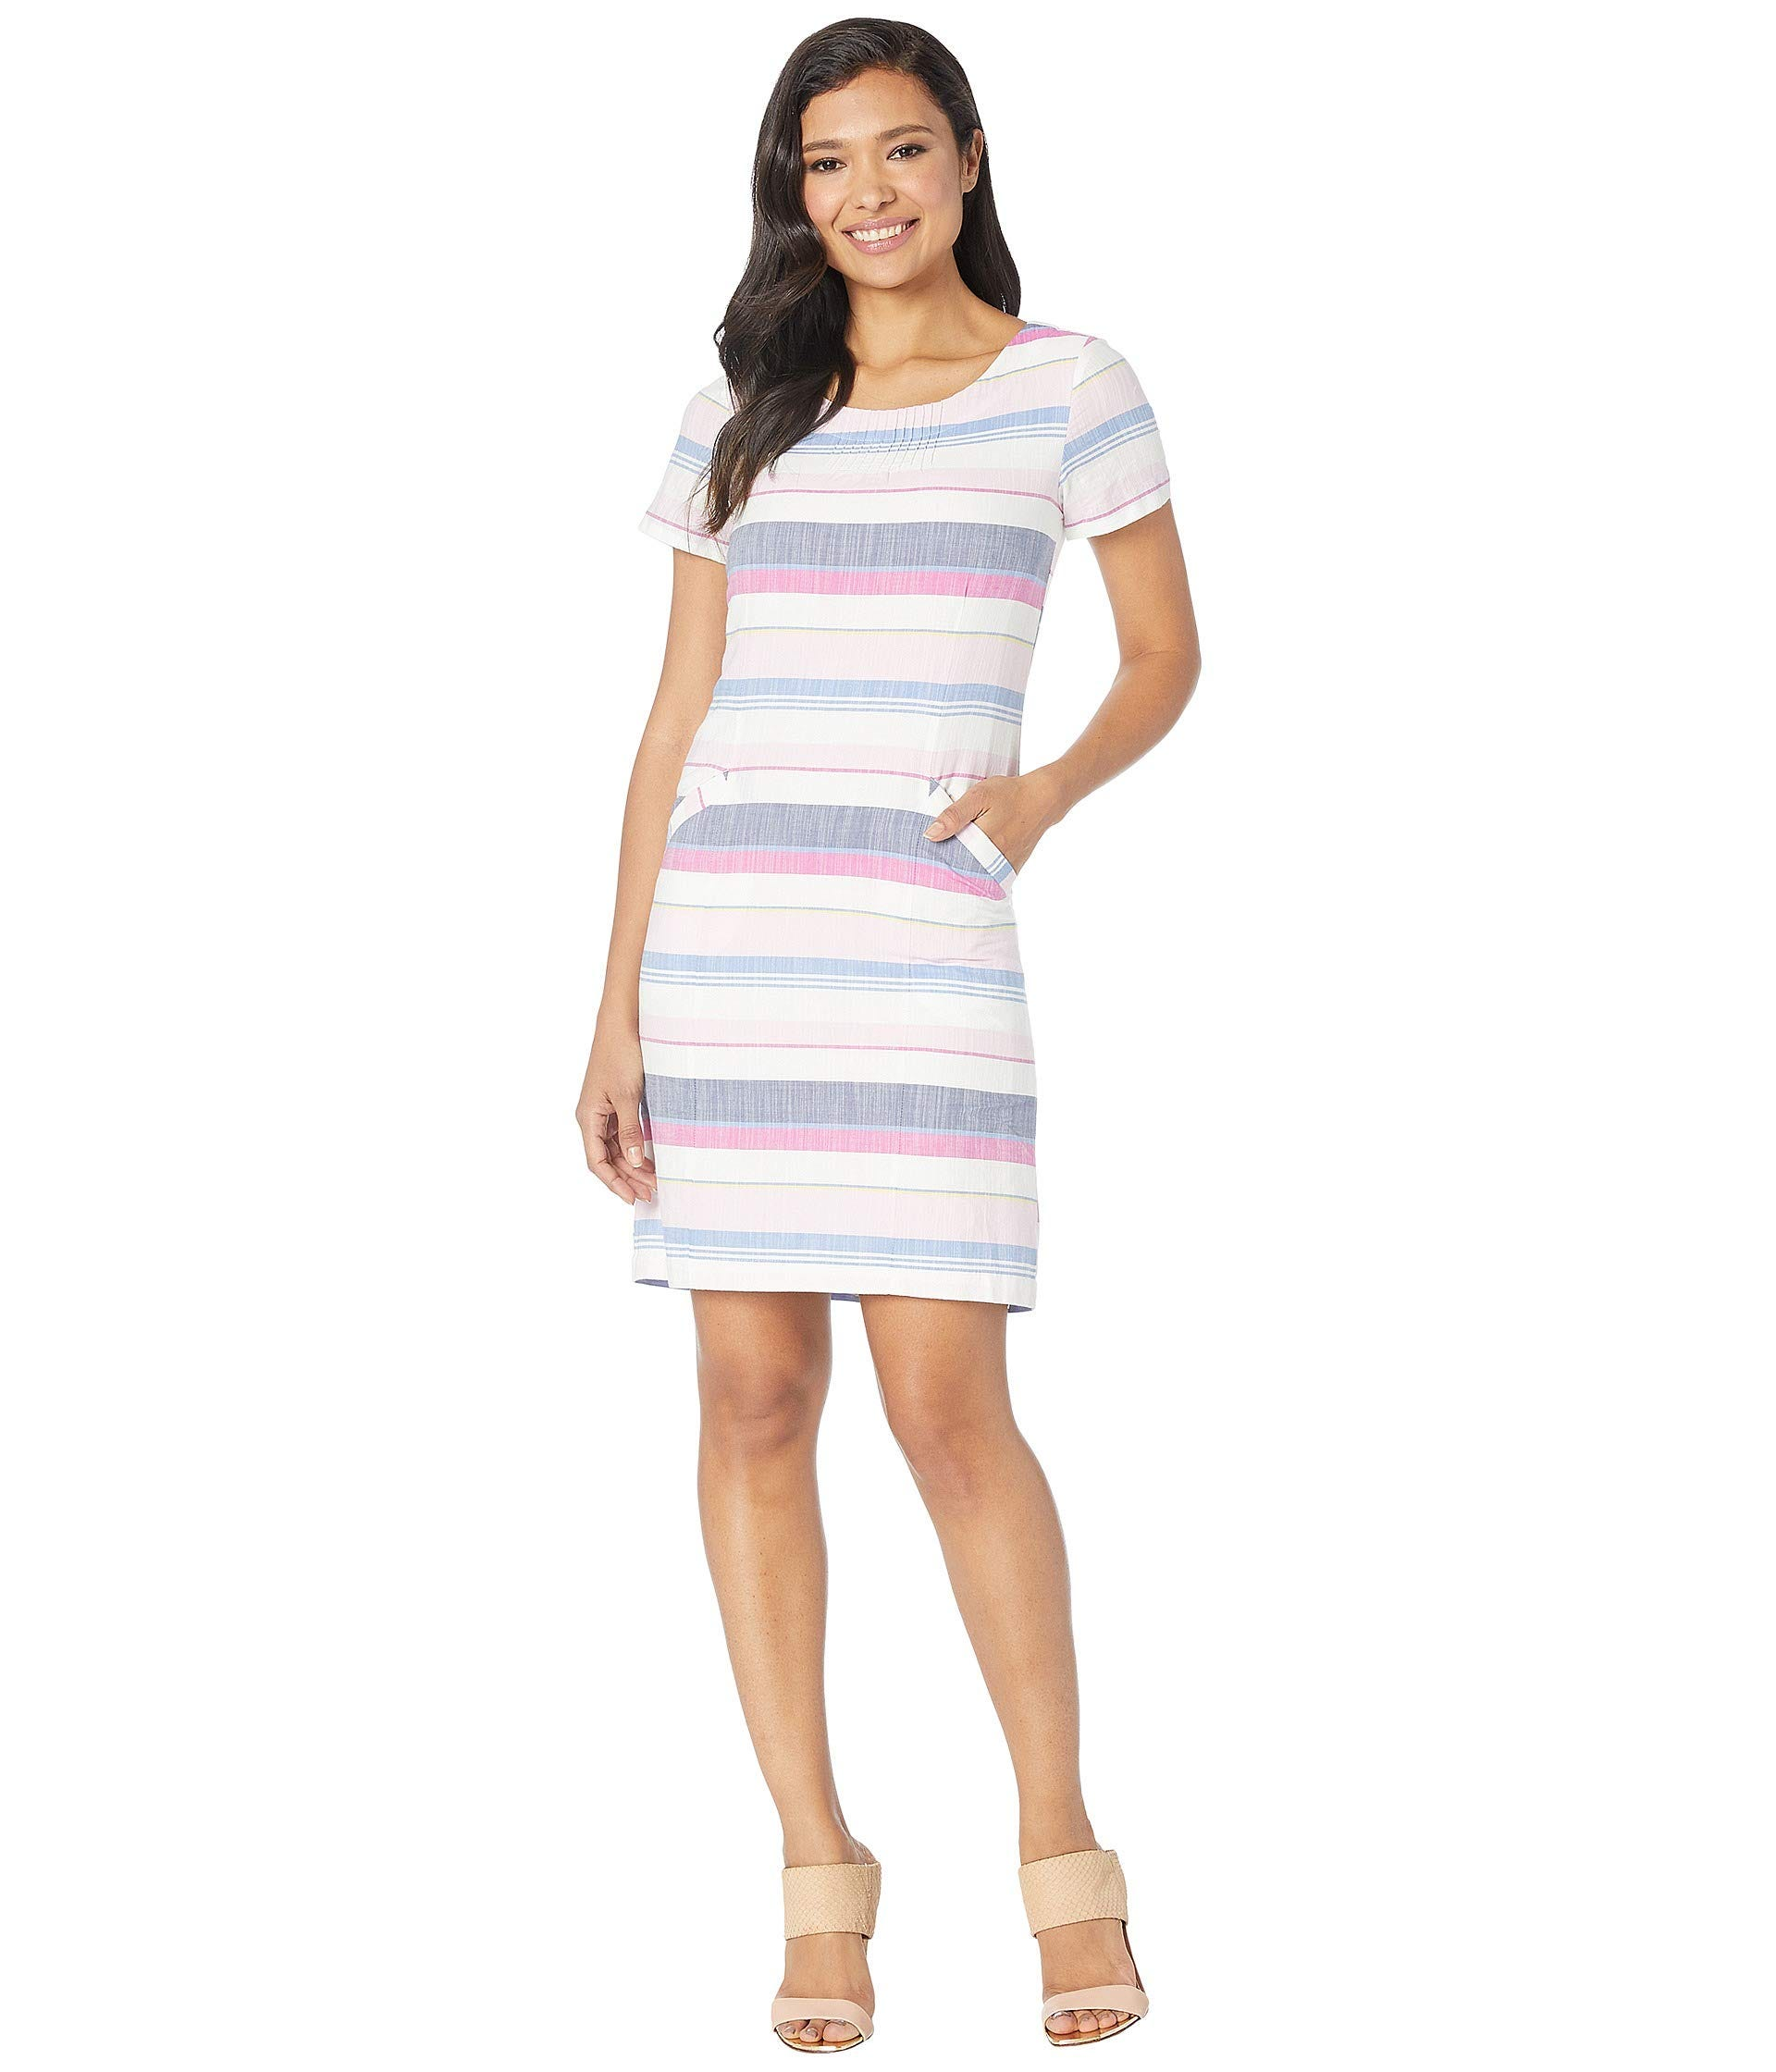 fe8ef571904 Casual and Office Dresses With Pockets For Spring